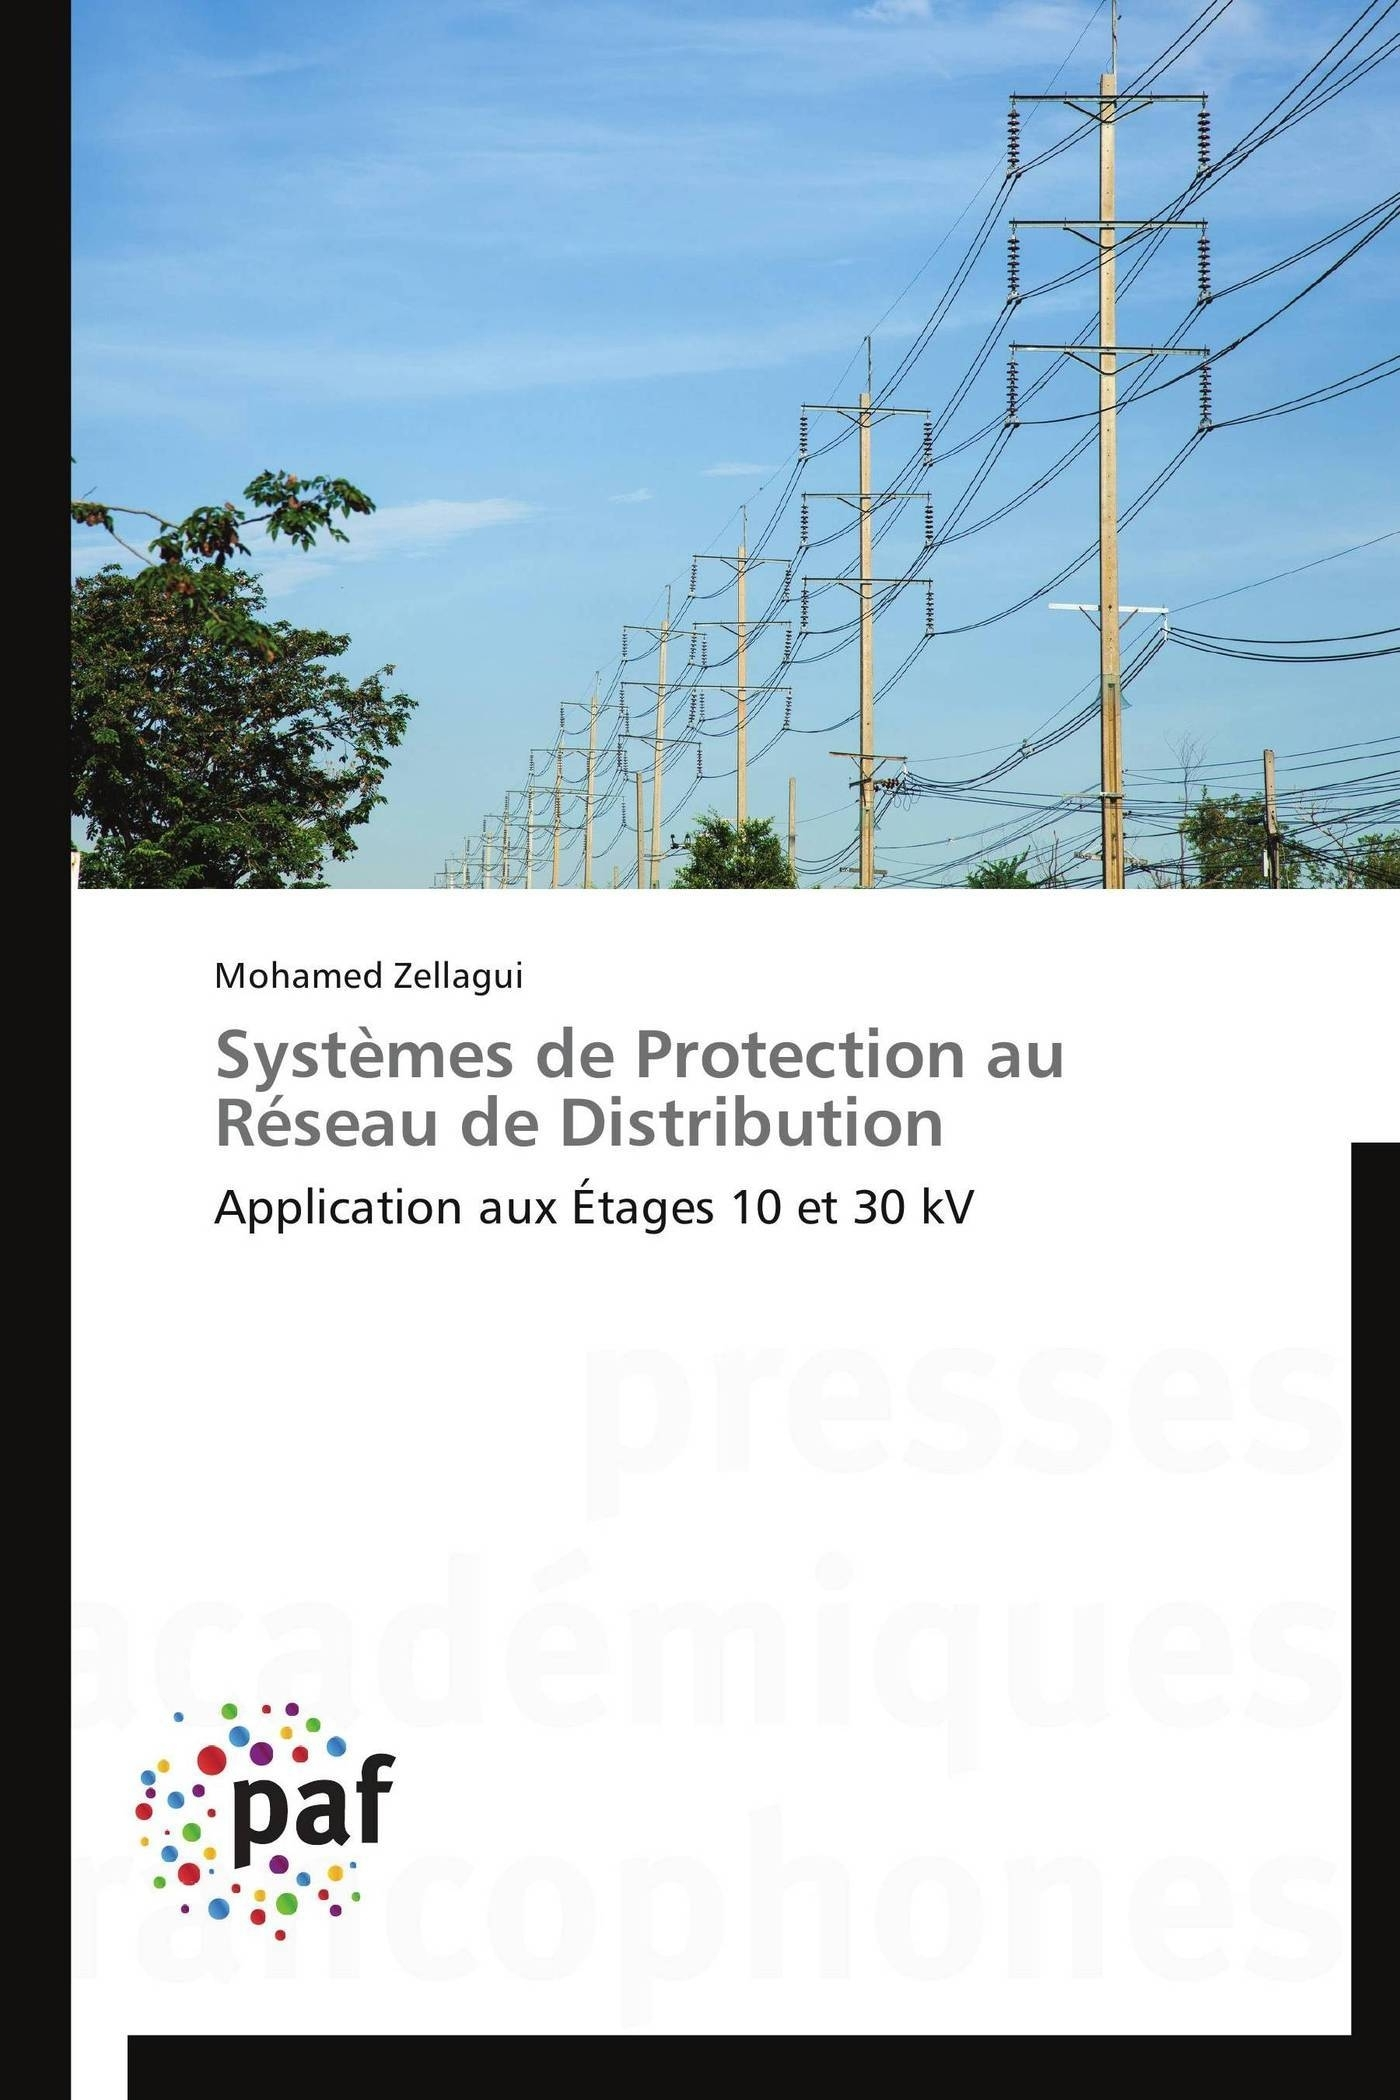 SYSTEMES DE PROTECTION AU RESEAU DE DISTRIBUTION